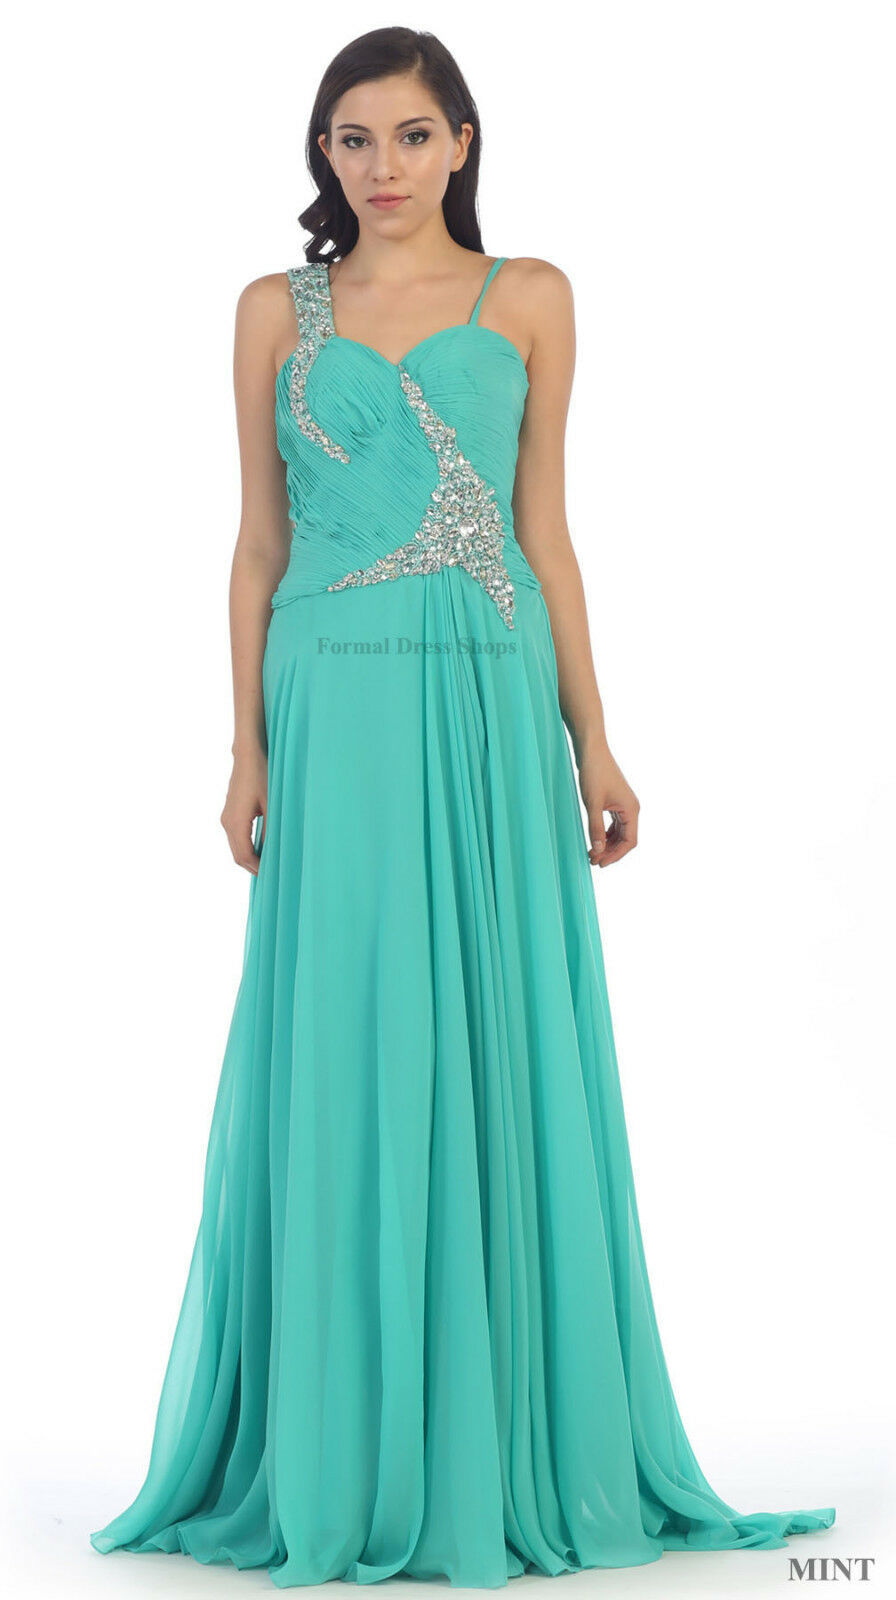 SALE! TALL EVENING GOWN FLOWY FORMAL PROM PAGEANT CHARITY BALL DRESS U0026 PLUS SIZE | EBay